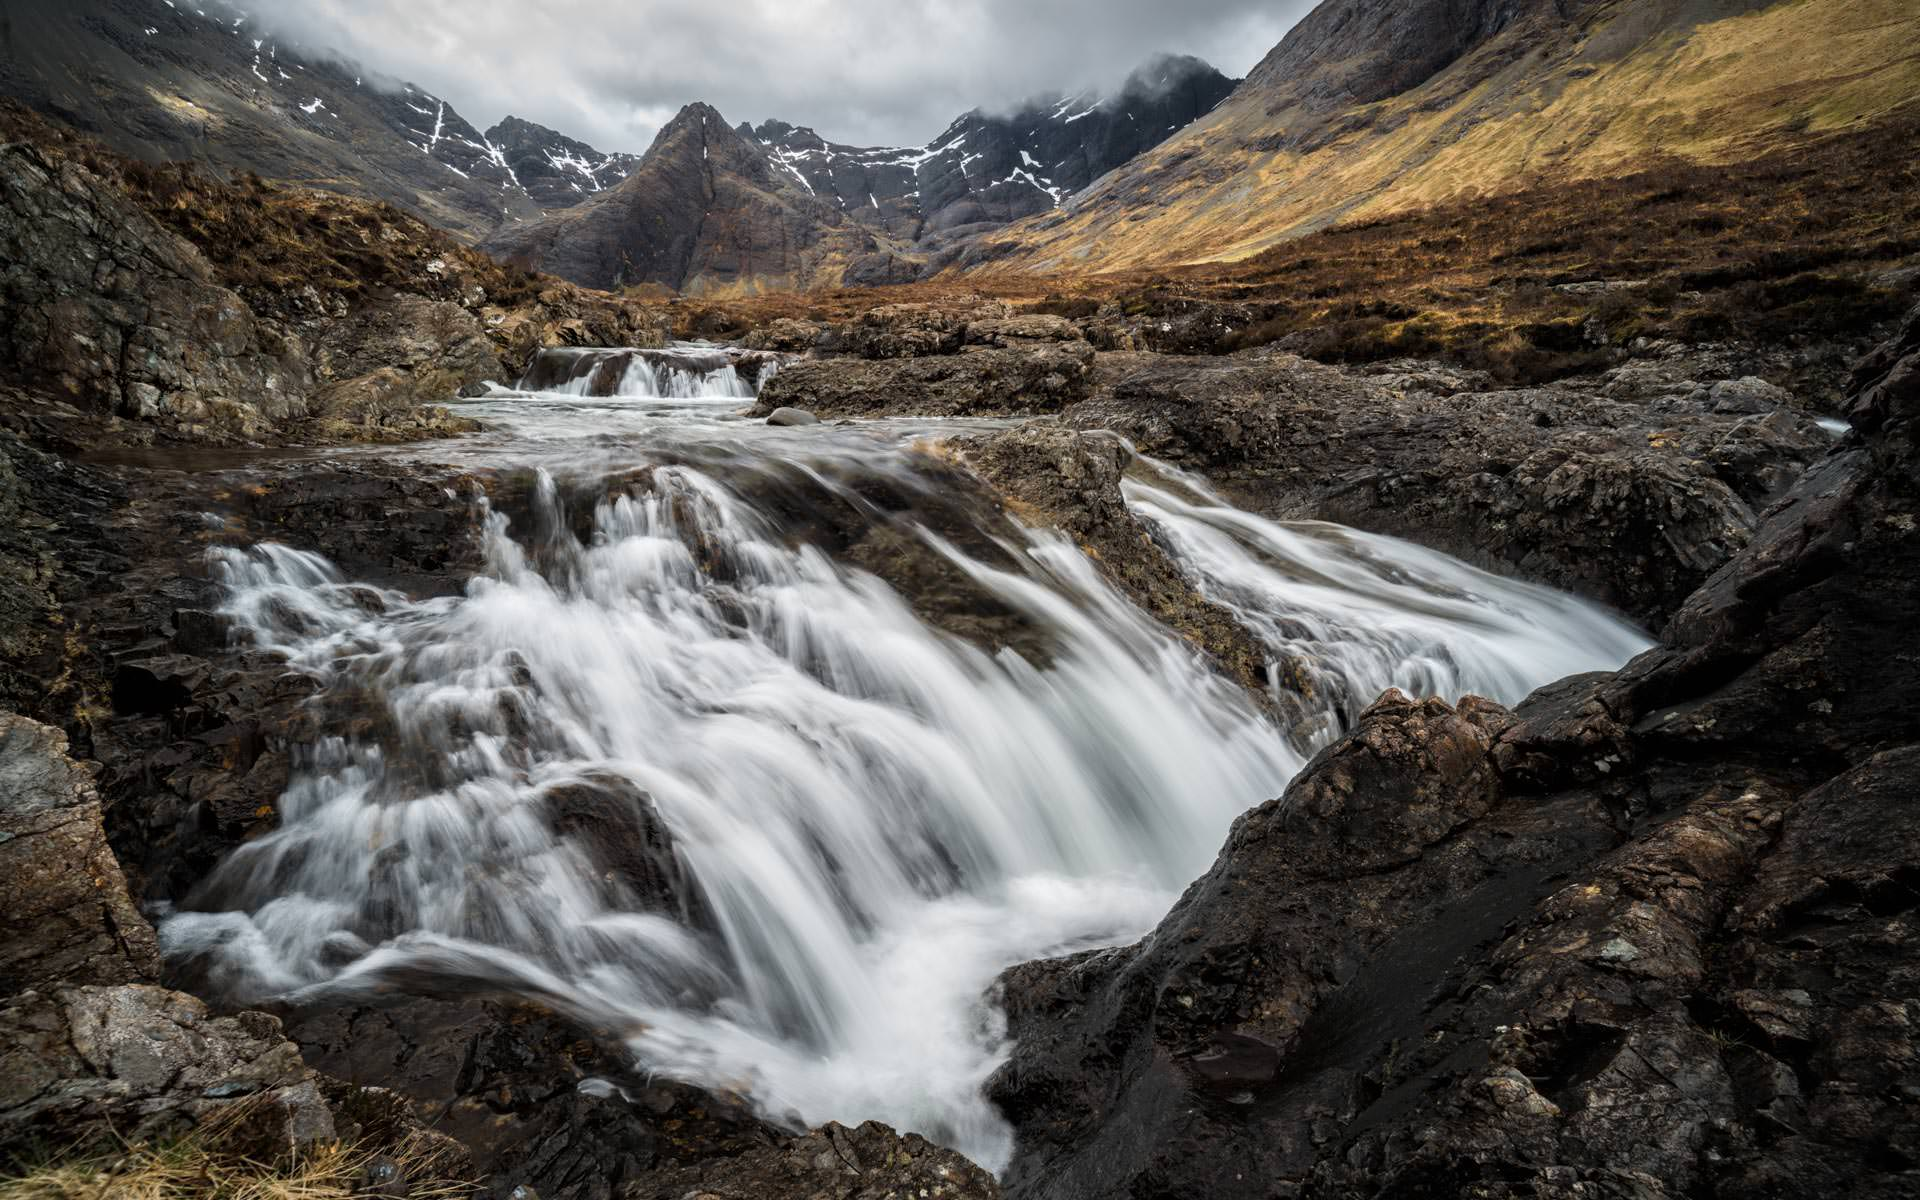 Waterfall at the Fairy Pools - Landscape Photo